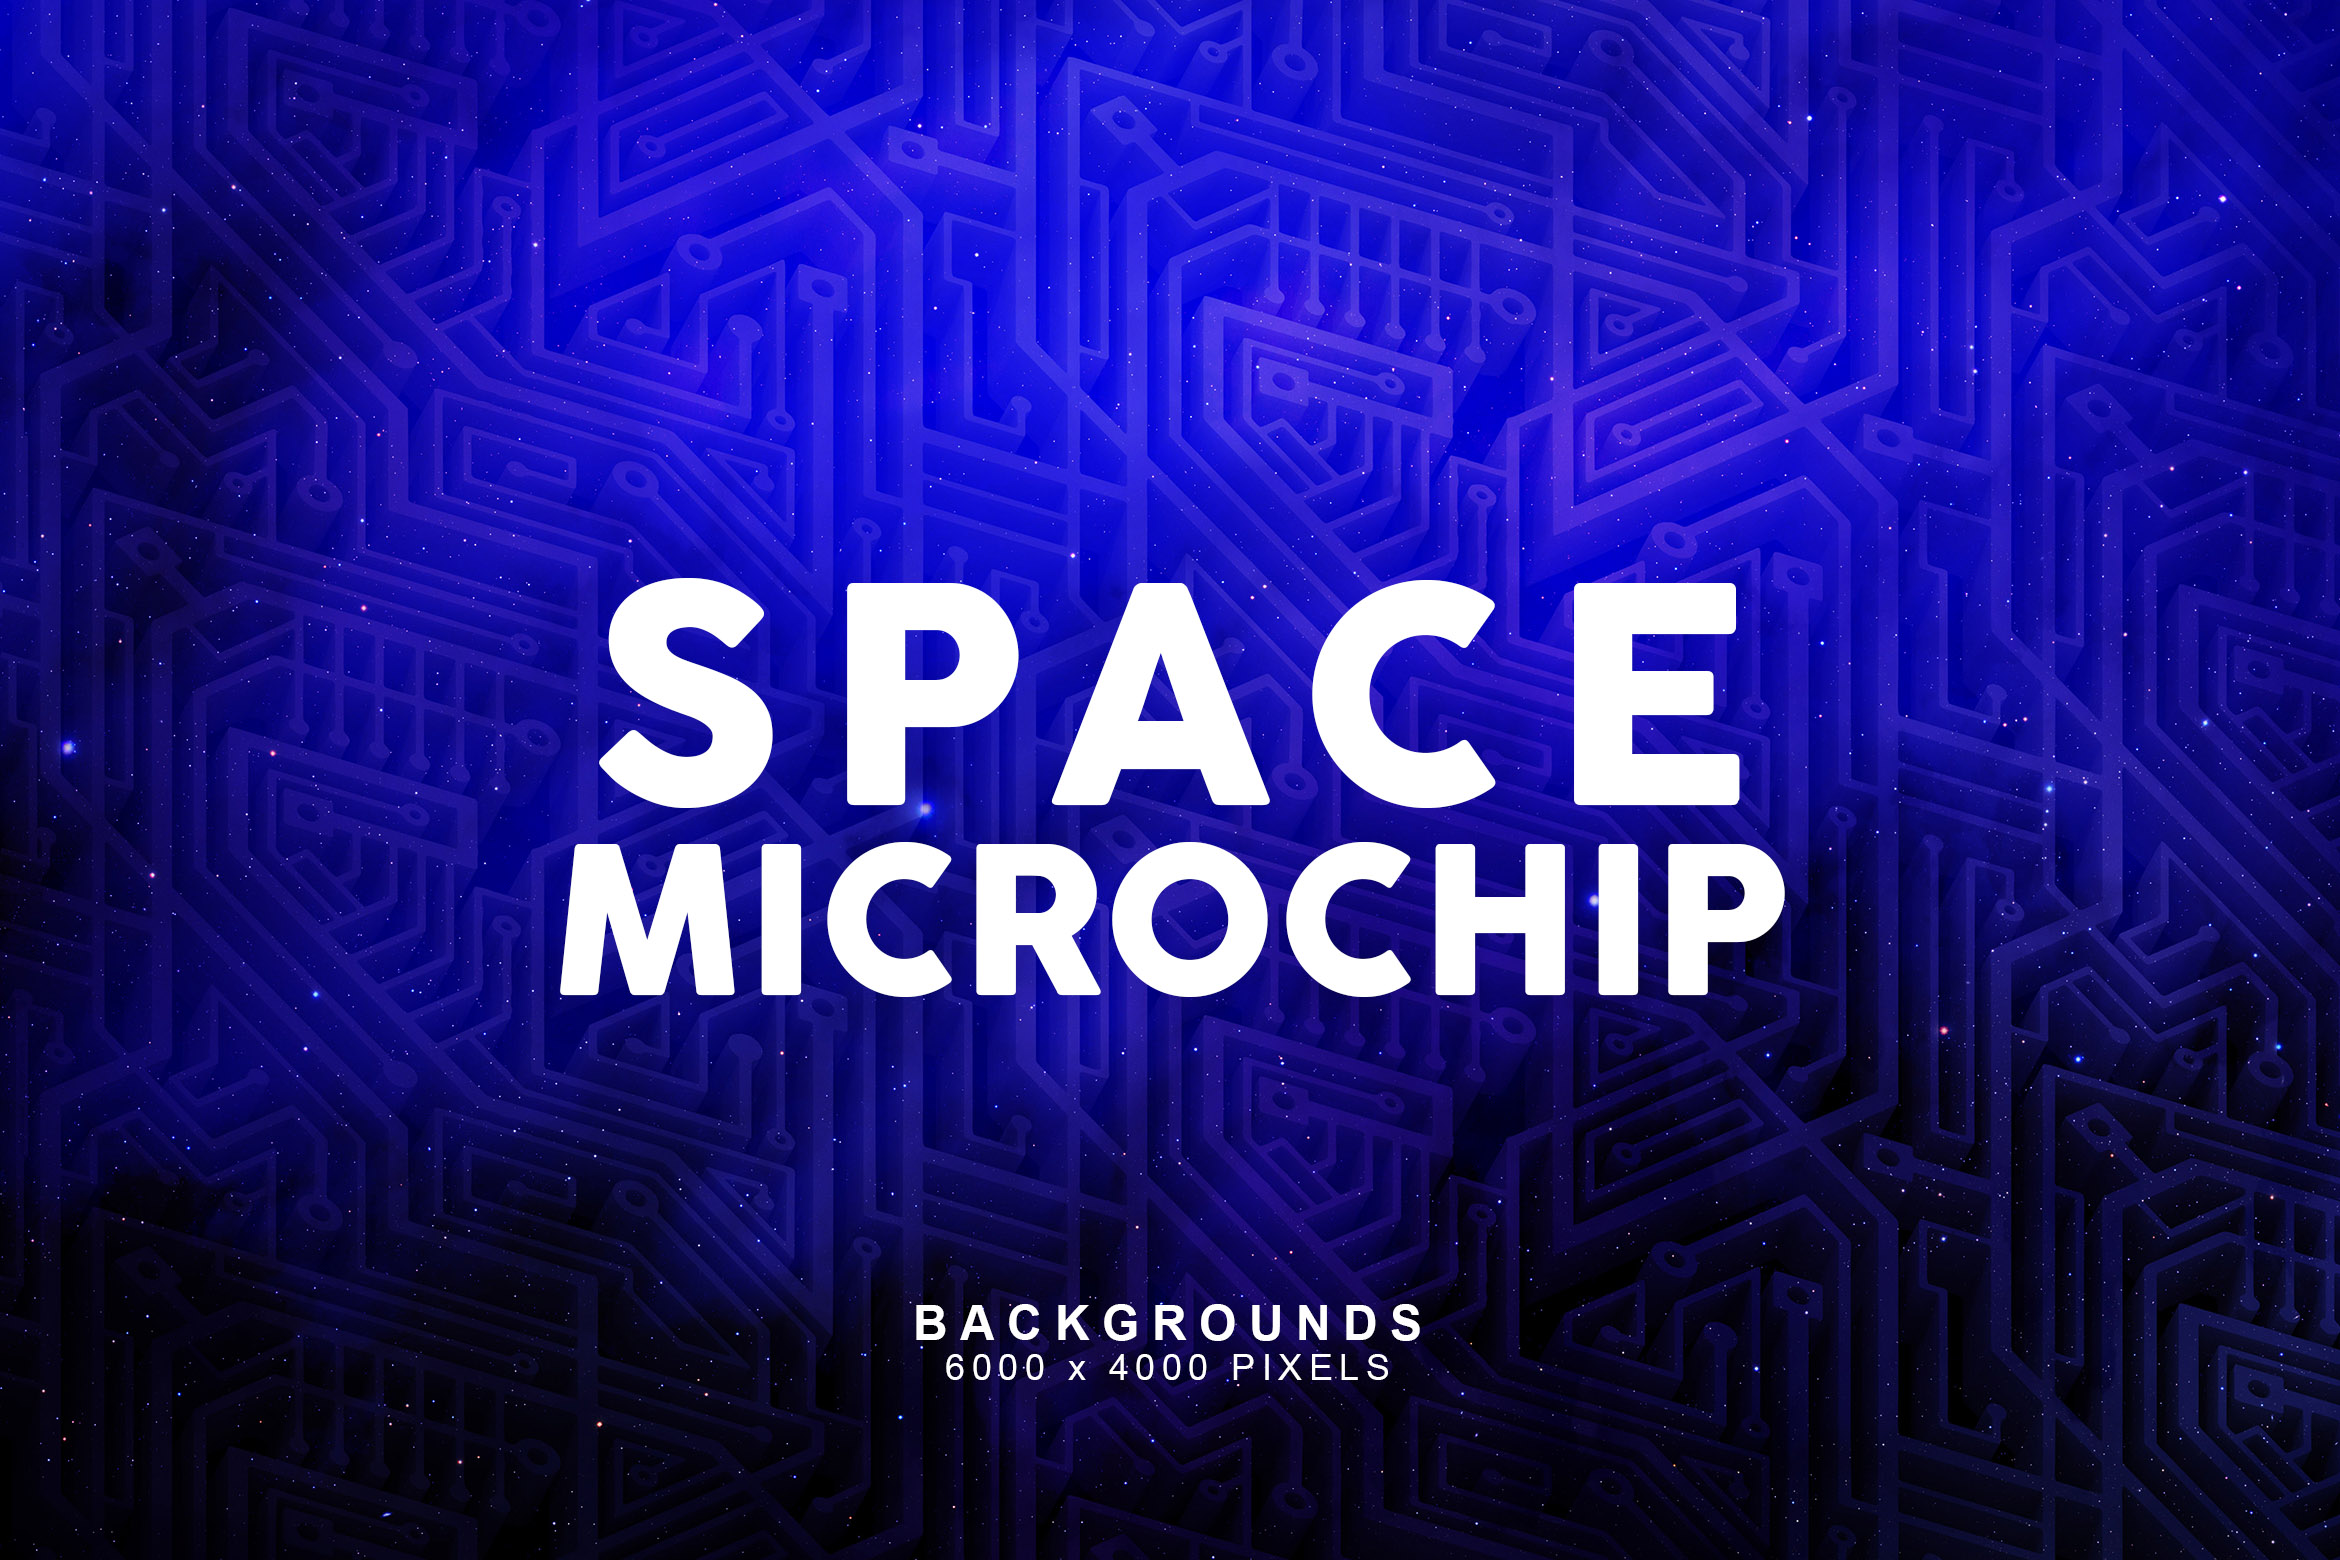 Download Free Space Microchip Backgrounds 2 Graphic By Artistmef Creative for Cricut Explore, Silhouette and other cutting machines.